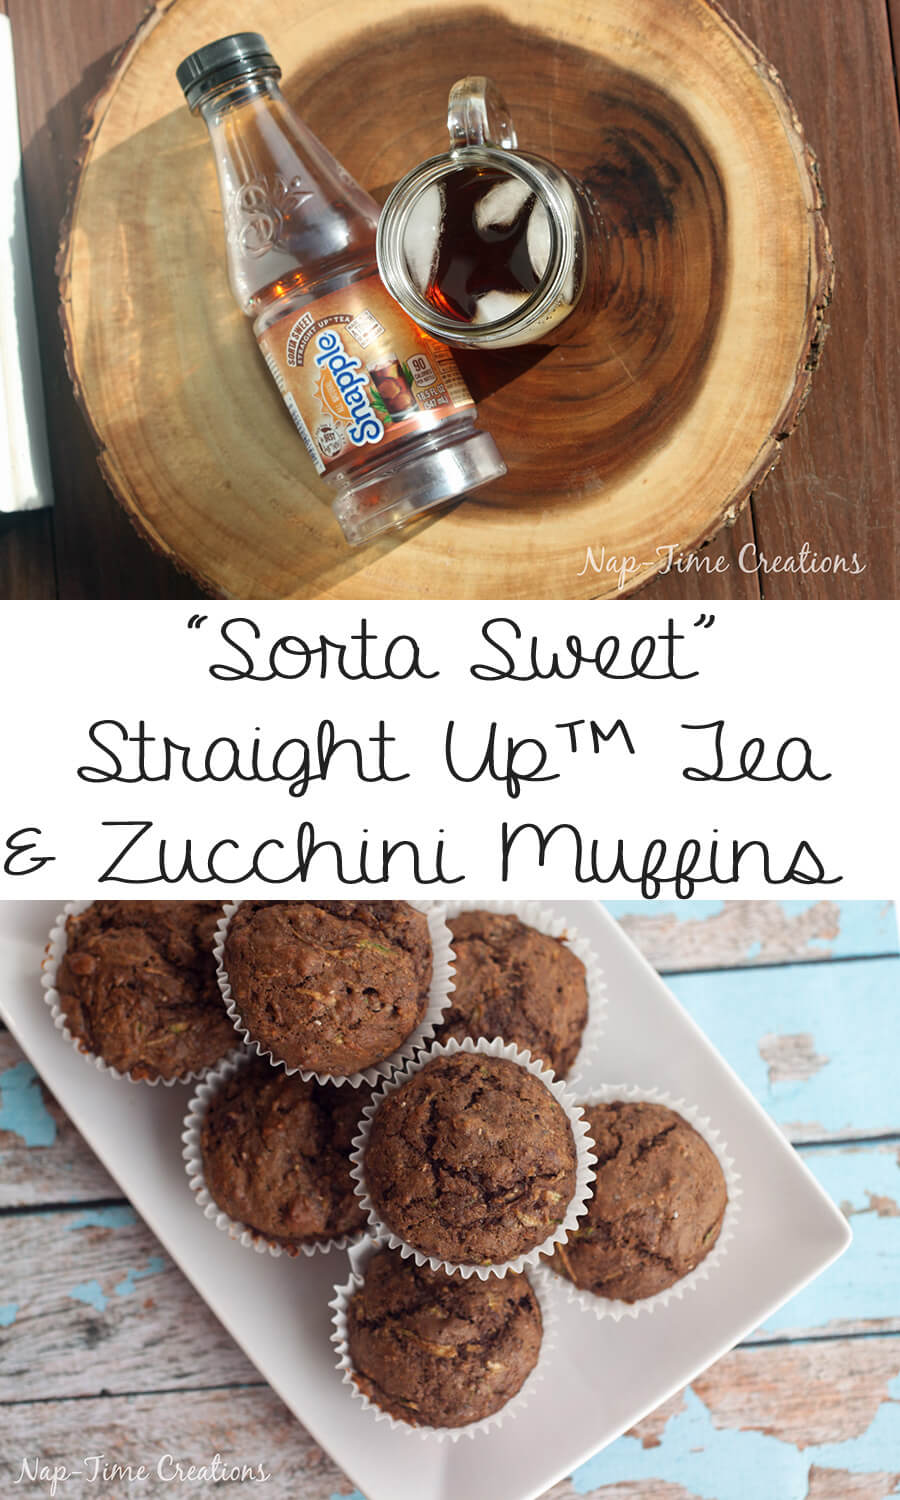 sorta sweet tea and zucchini muffin recipe from Nap-Time Creations